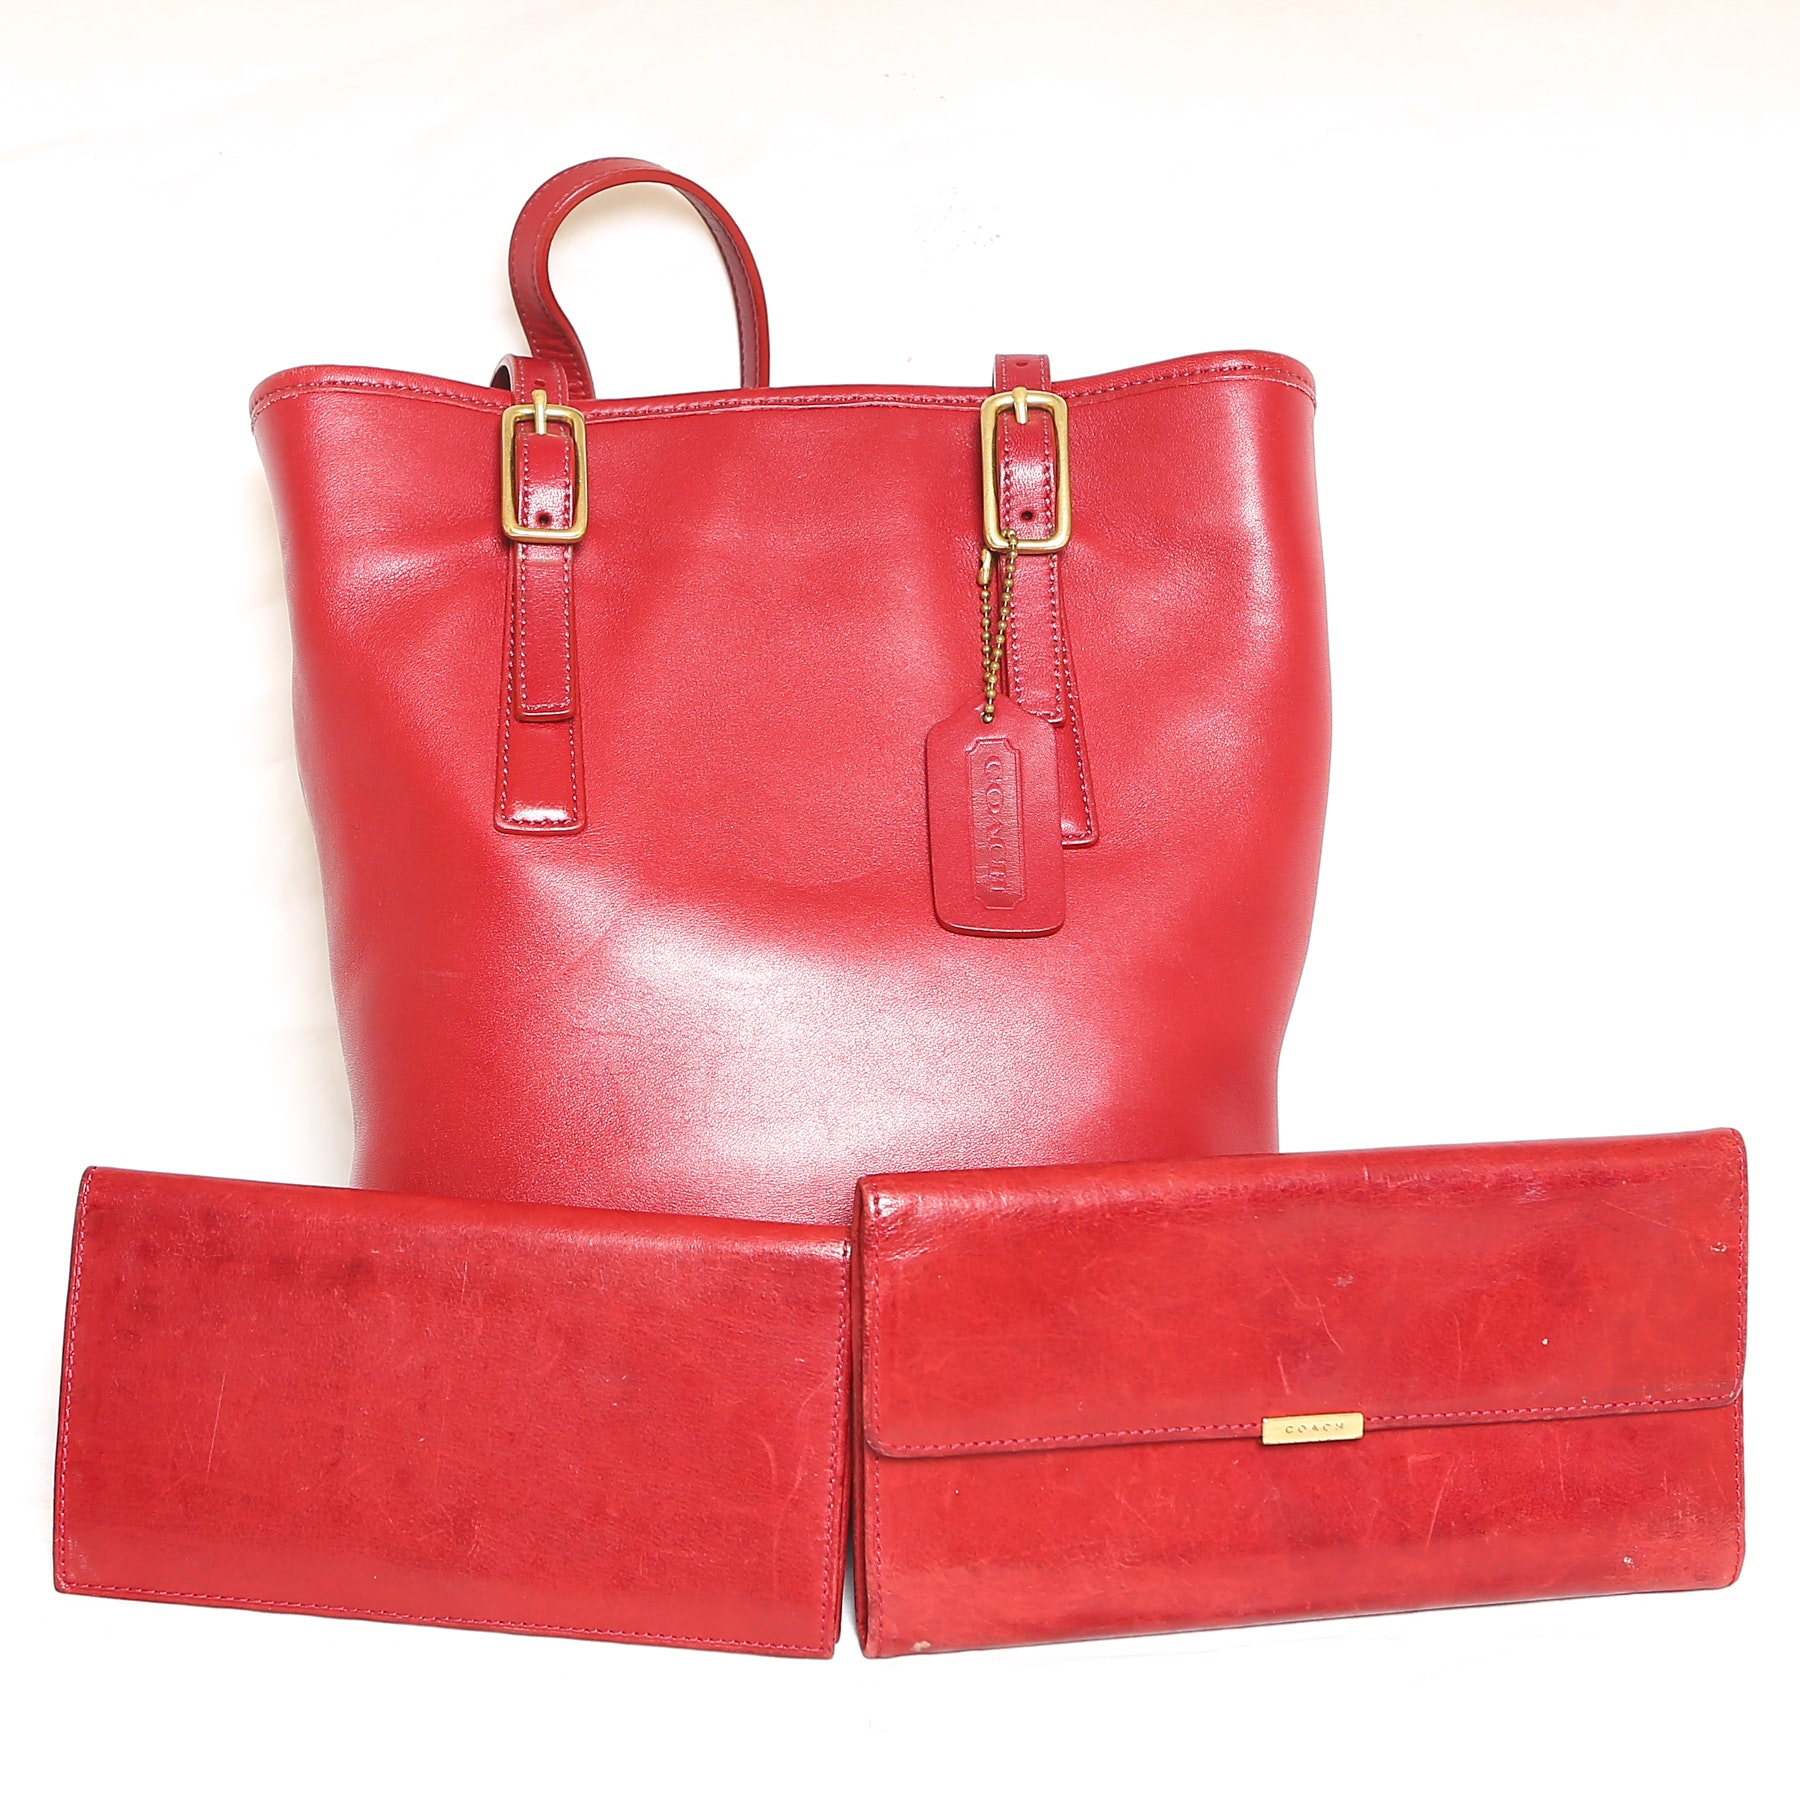 Red Leather Coach Bucket Bag with Wallet and Checkbook